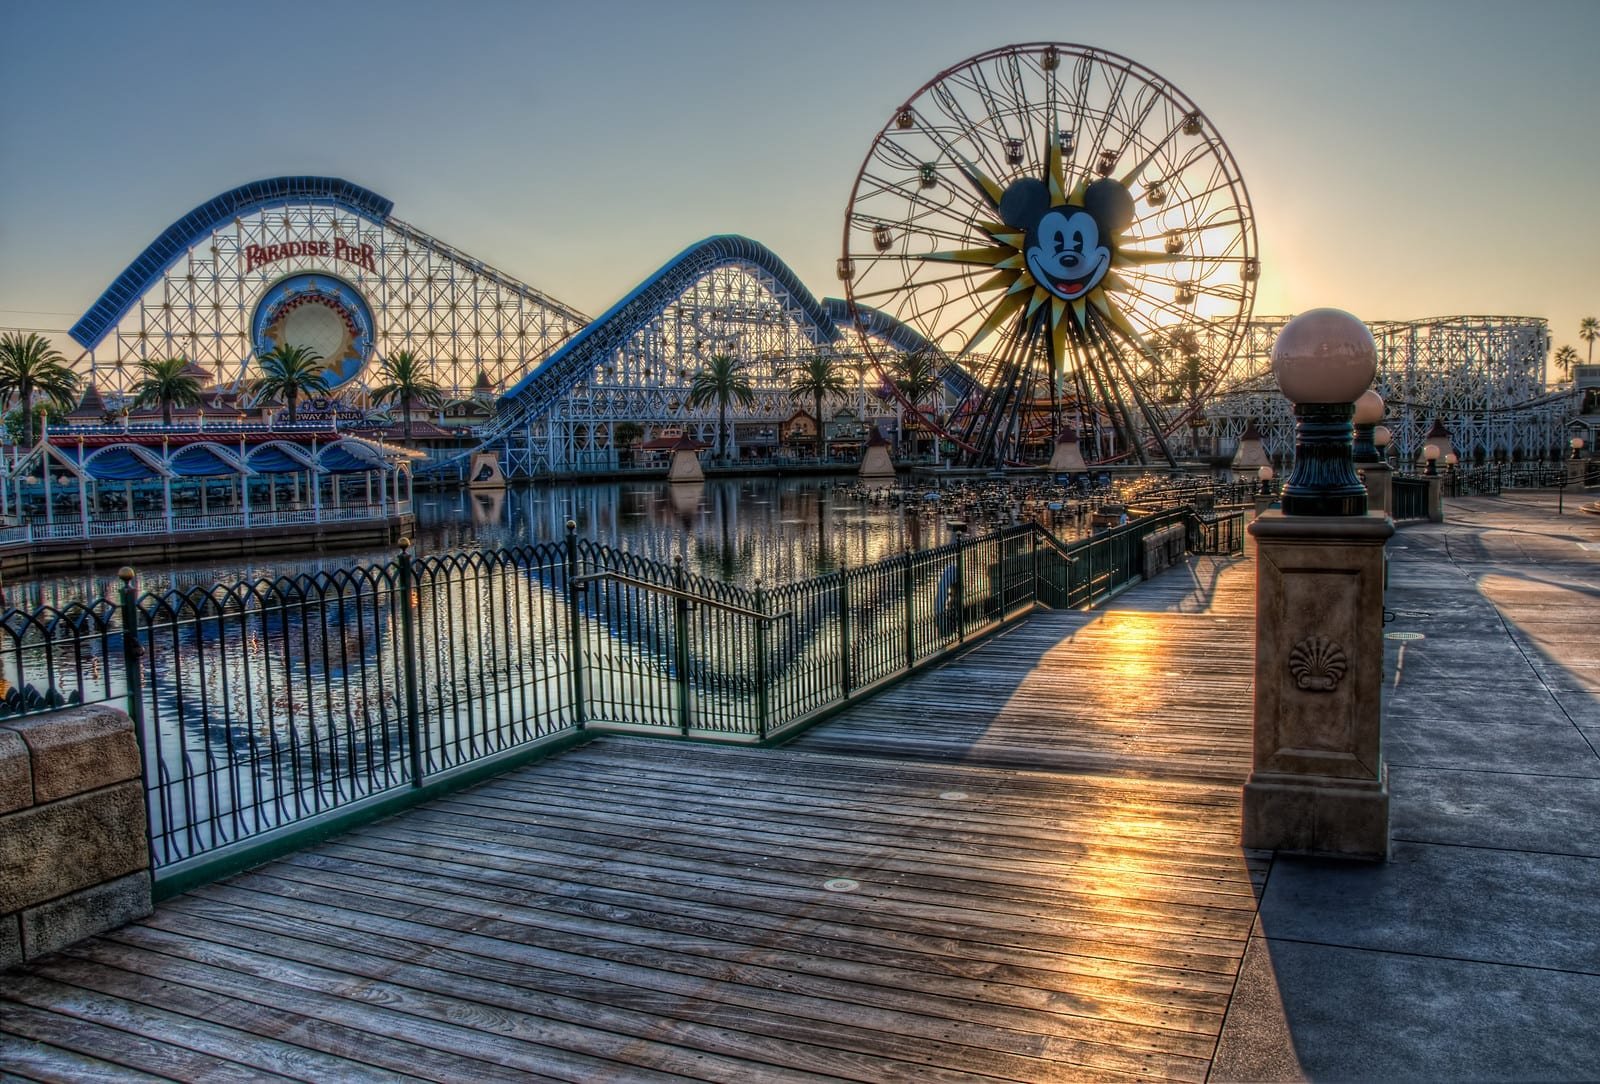 The Best Photo Ops at Disney Parks